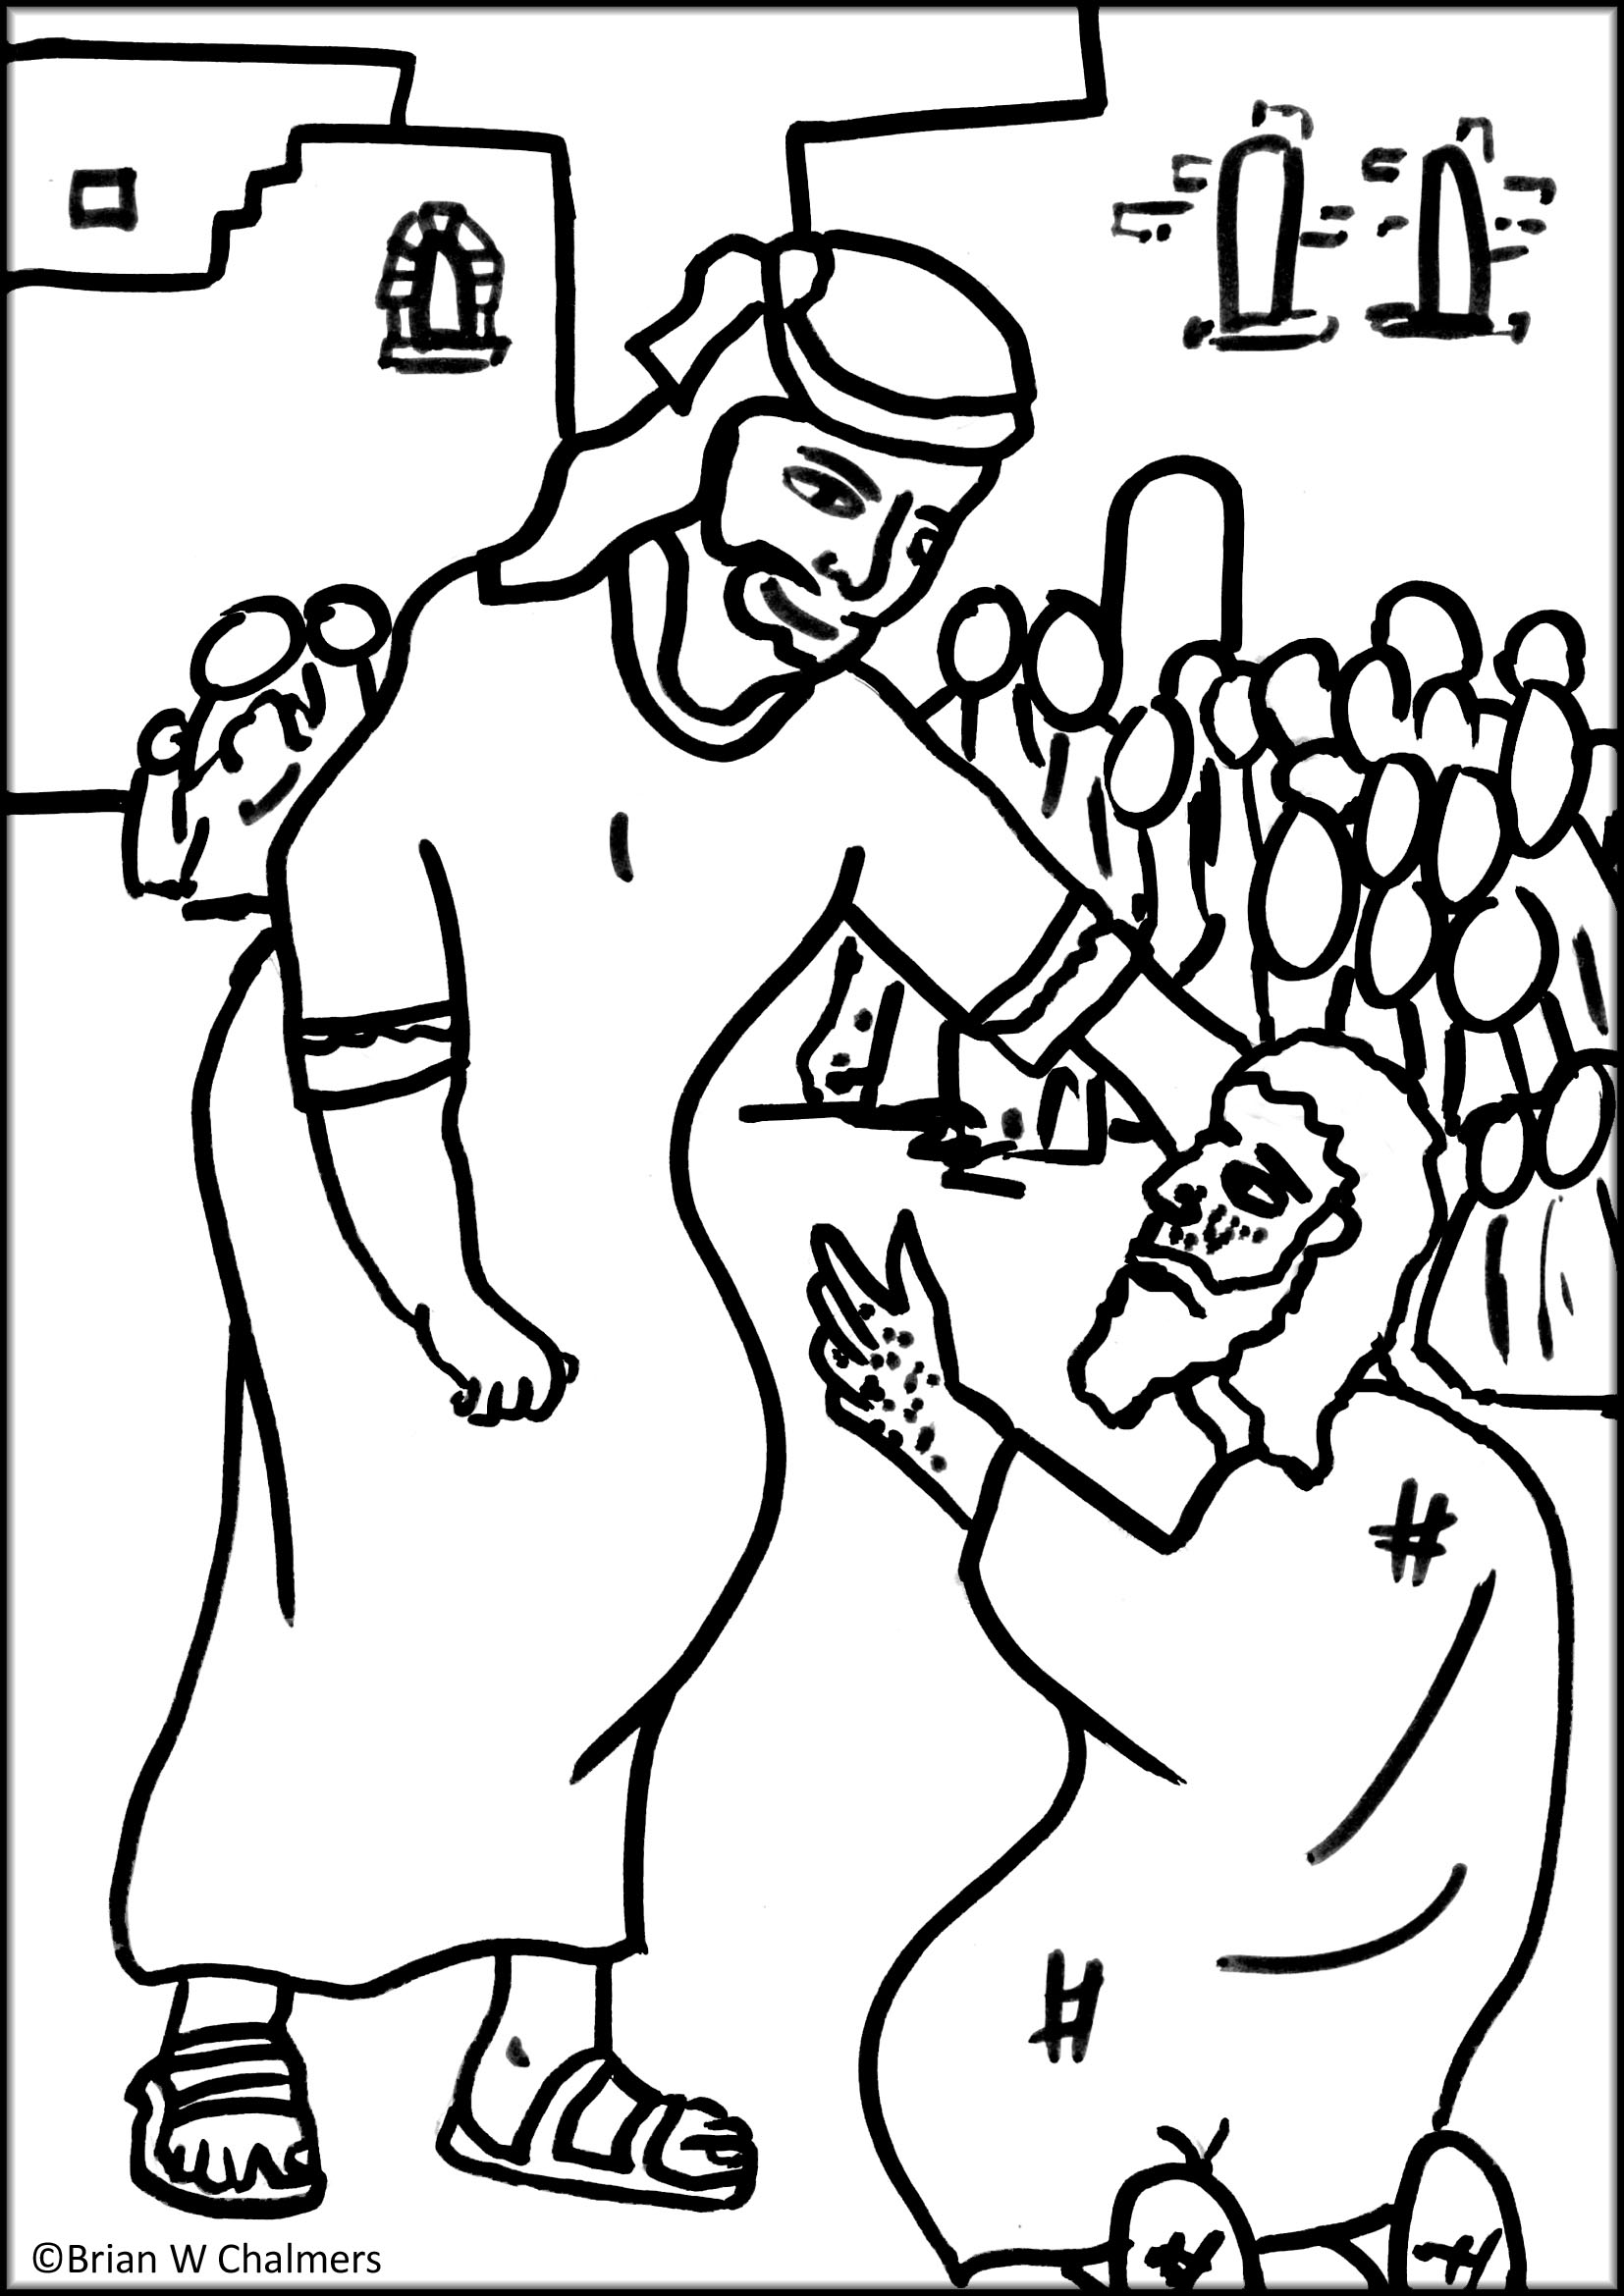 Coloring Pages Jesus Ehals - Coloring Home